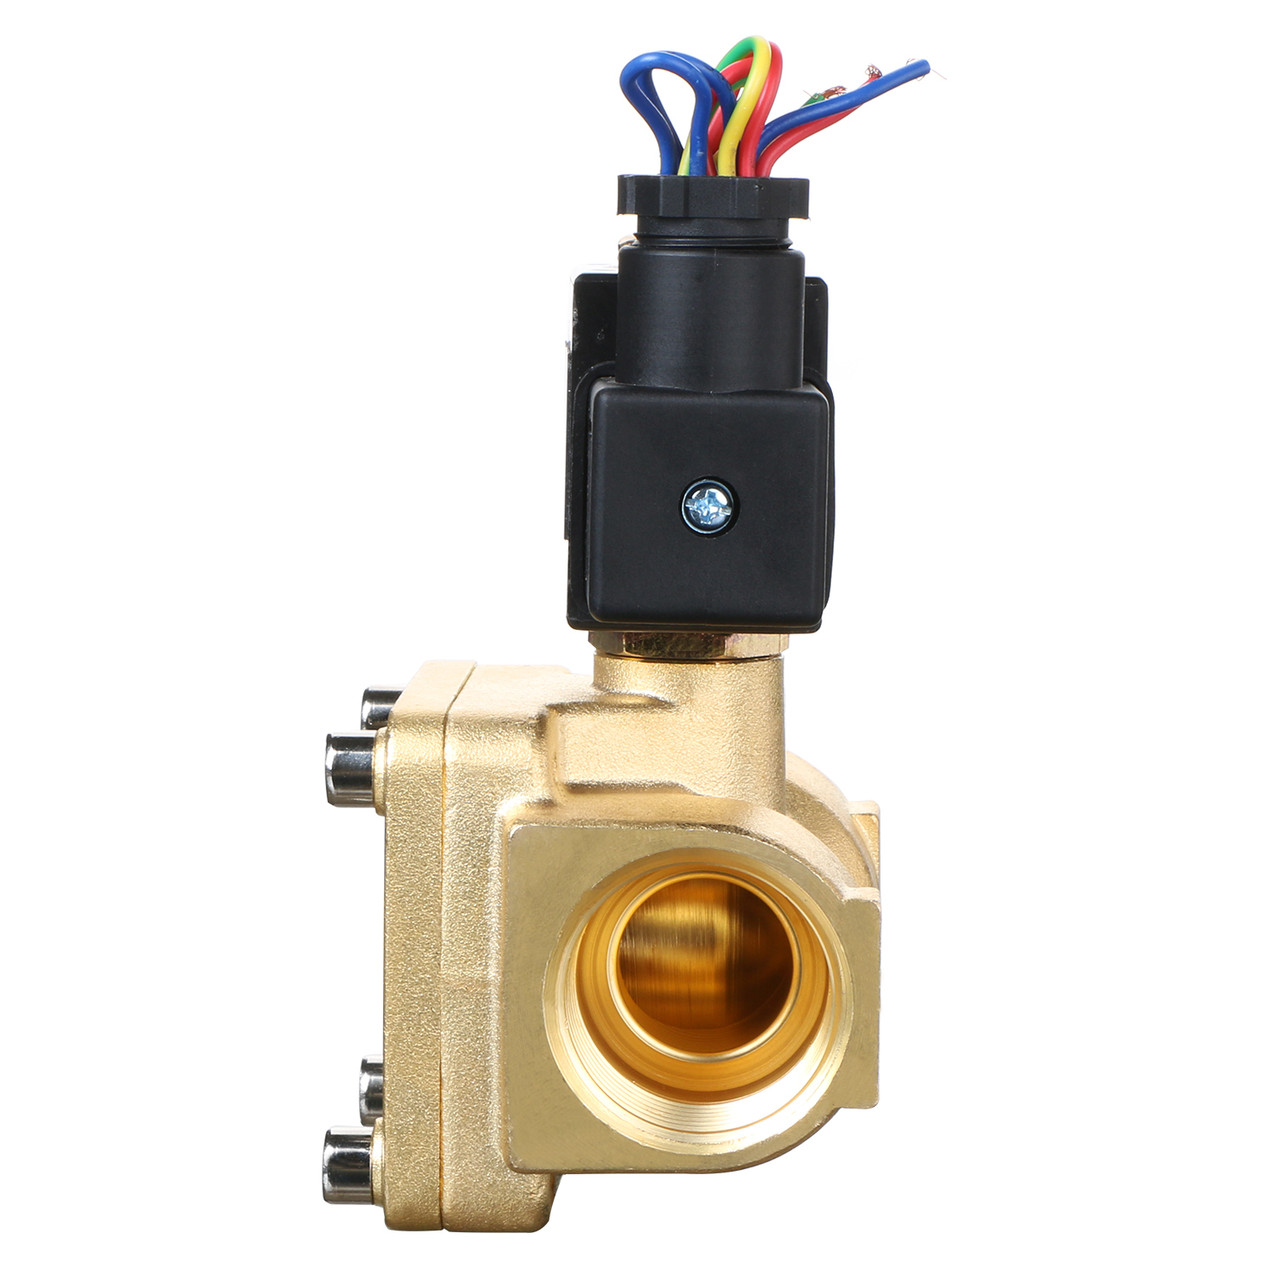 """USSOLID Electric Solenoid Valve- 1"""" 12V DC 230PSI Solenoid Valve Brass Body Normally Closed, VITON SEAL"""